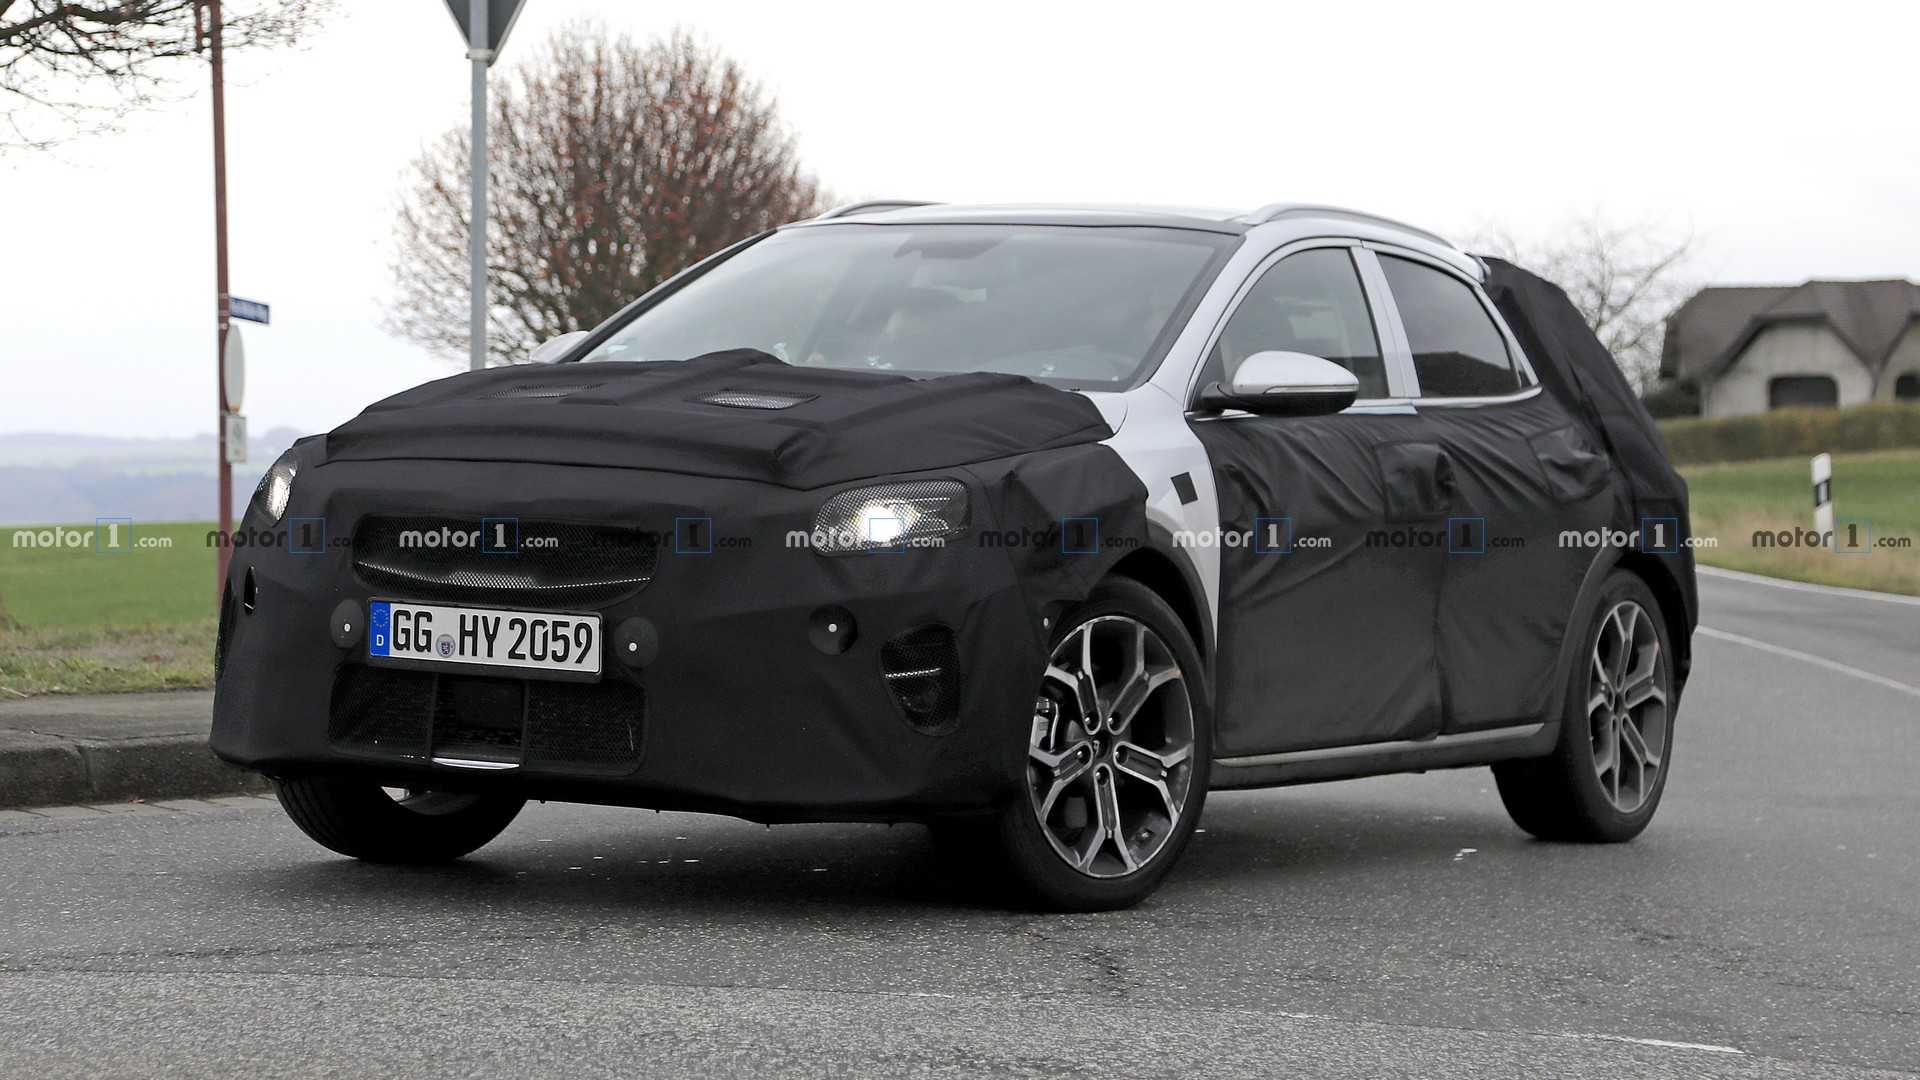 2020 Kia Ceed Suv Caught Up Close And Personal